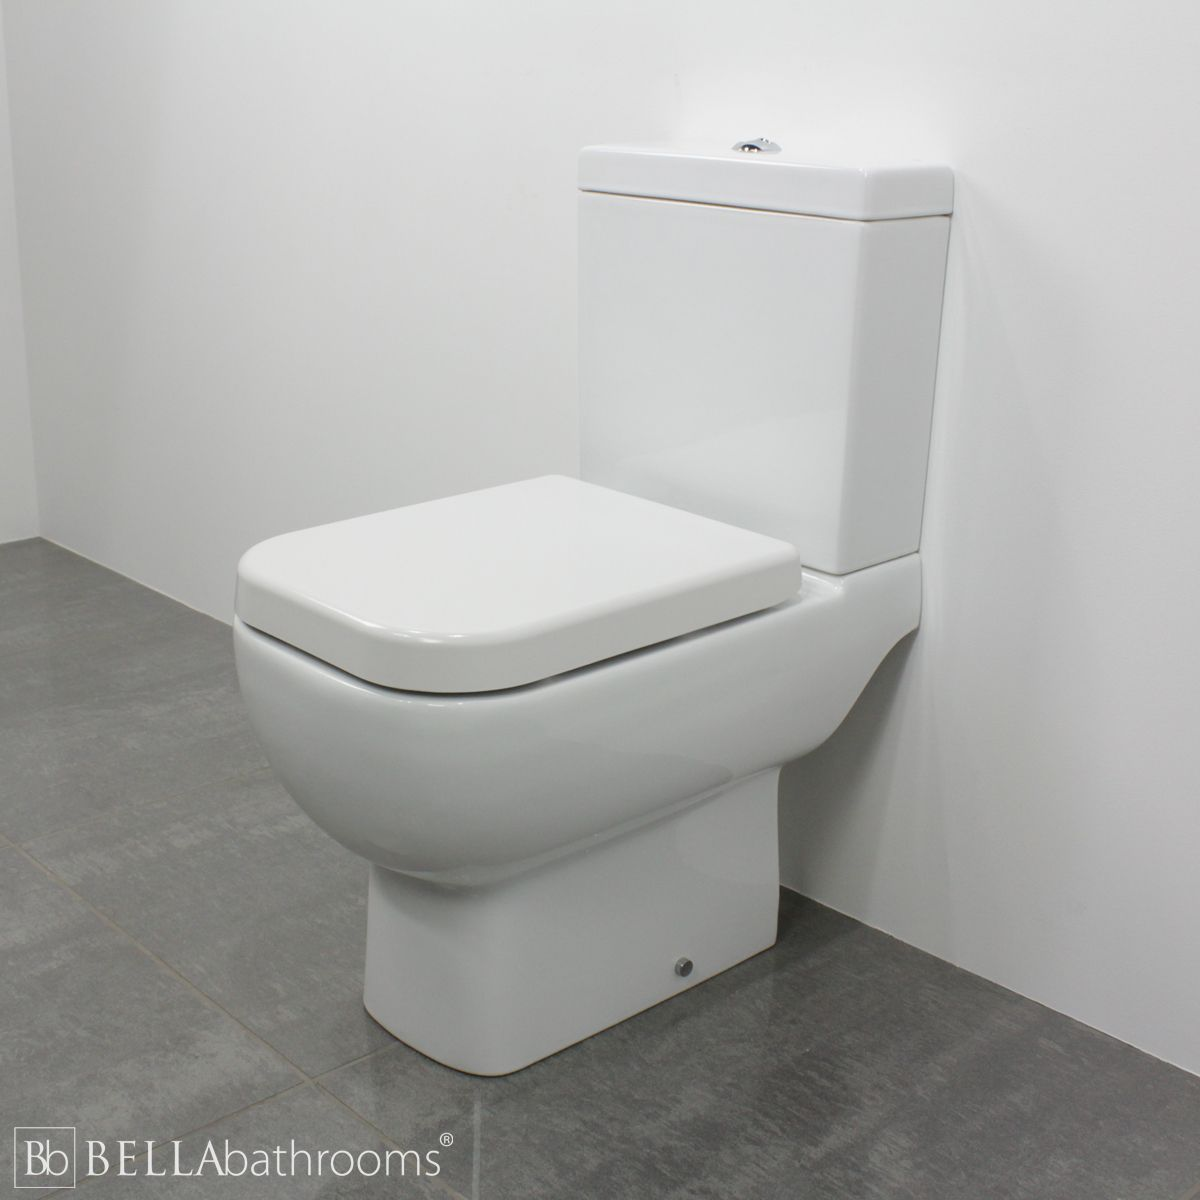 One of the smallest toilets available